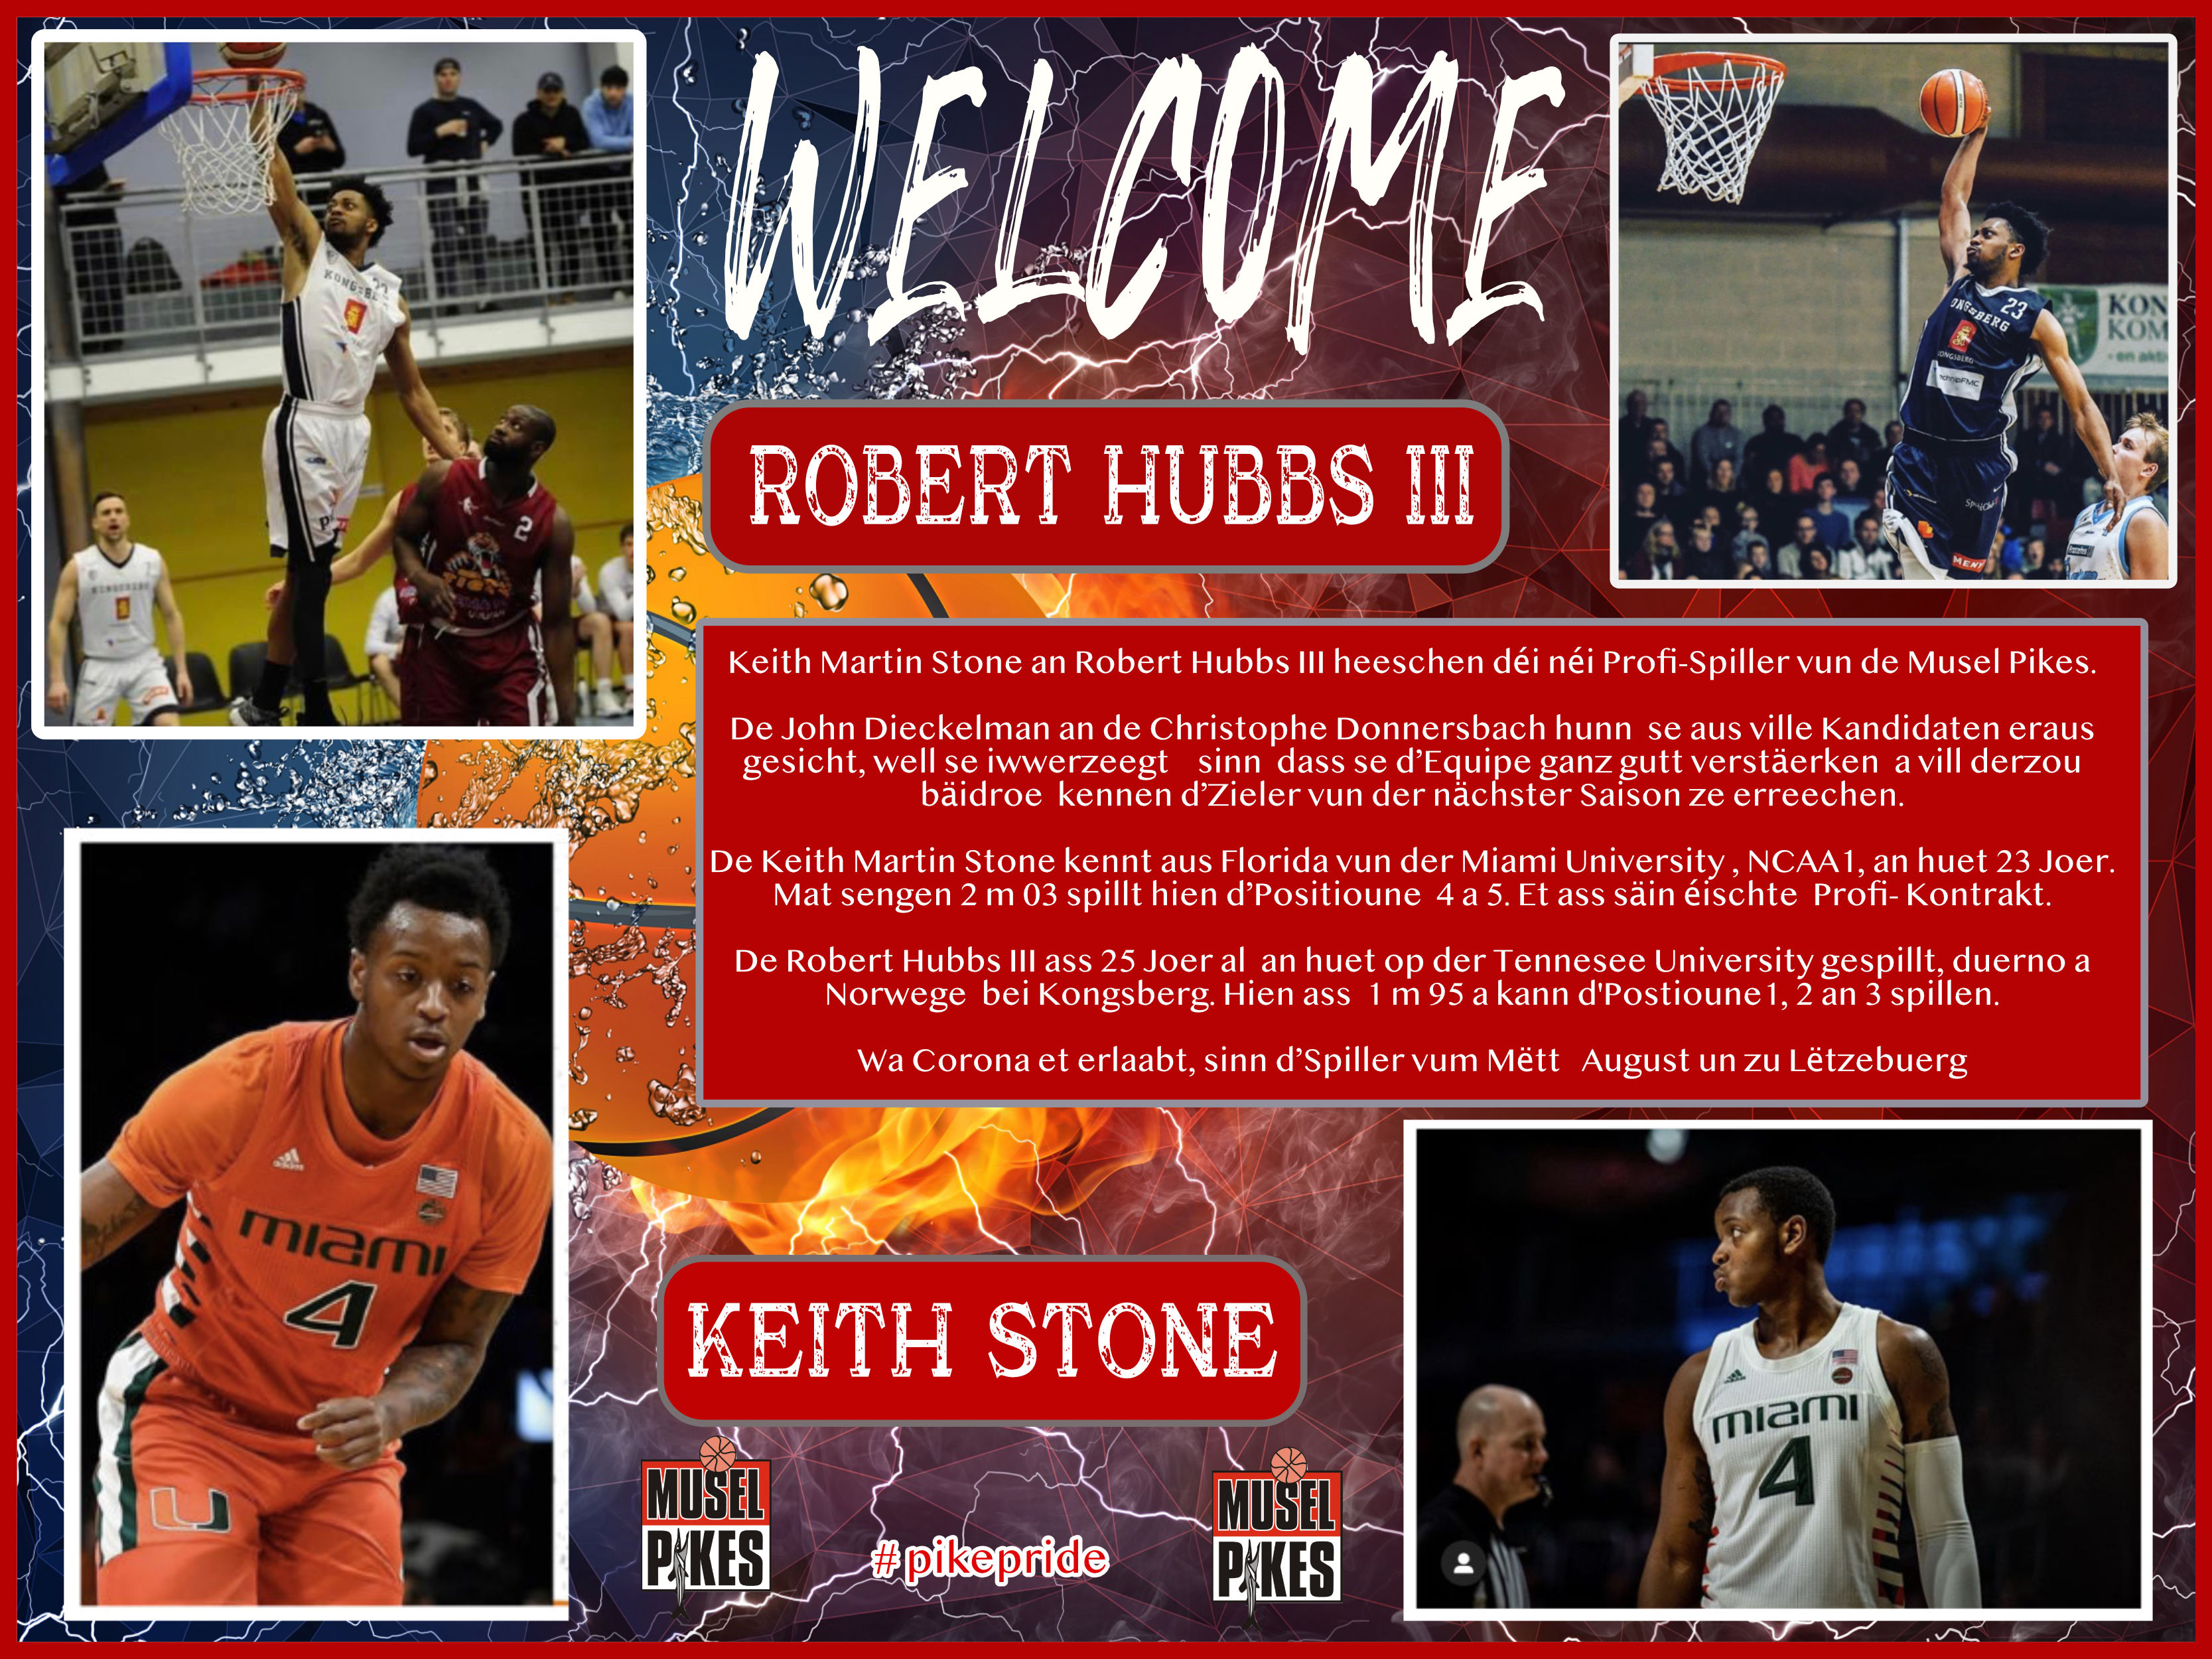 WELCOME ROBERT and KEITH